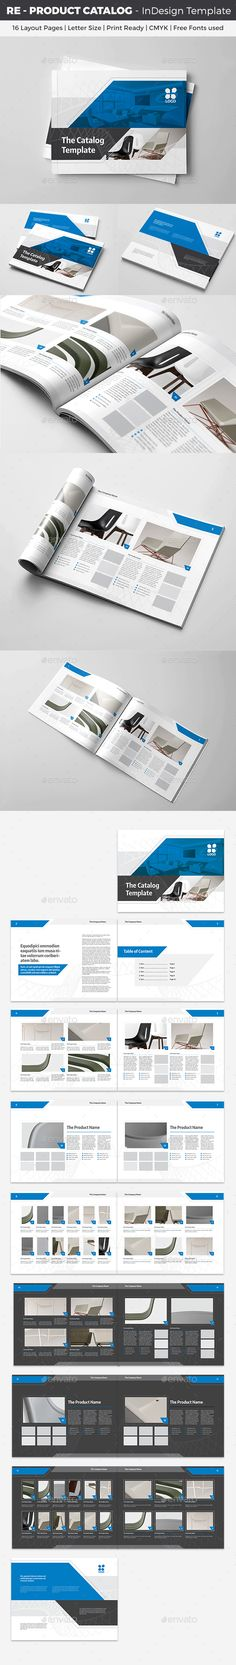 RE  Product Catalog InDesign Template  — InDesign Template #template #indd • Download ➝ https://graphicriver.net/item/re-product-catalog-indesign-template/18212612?ref=pxcr